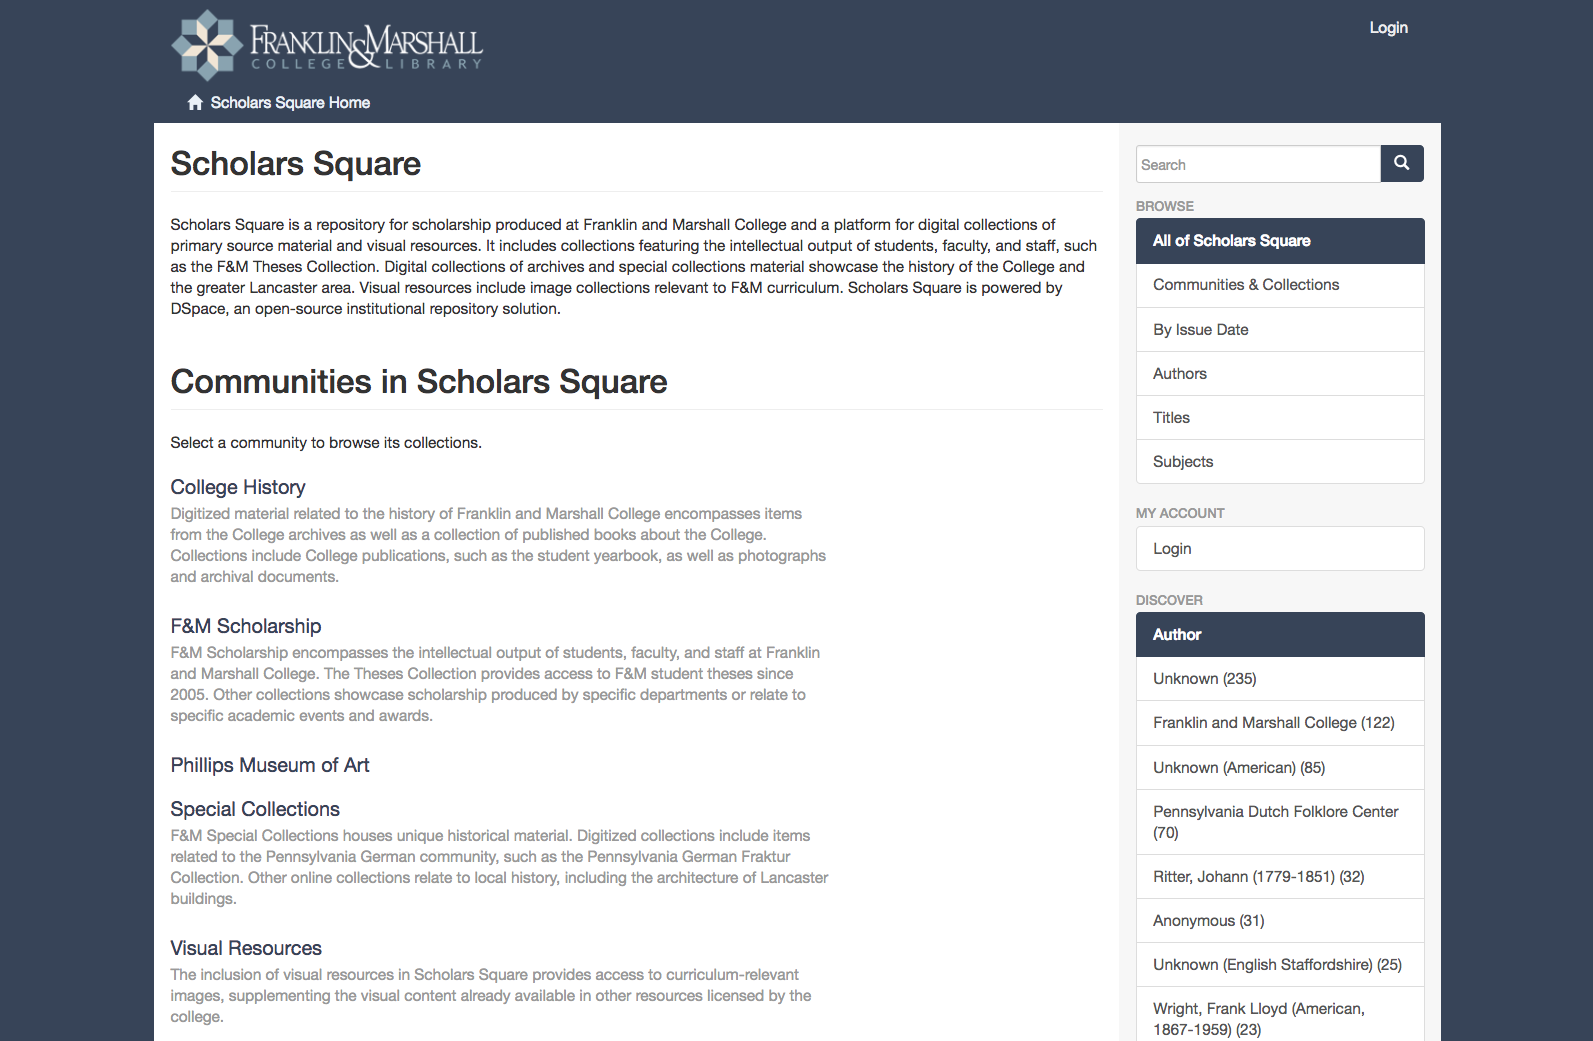 Screen shot of the Scholars Square homepage, showing the list of Communities in Scholars Square: College History, F&M Scholarship, Special Collections, and Visual Resources